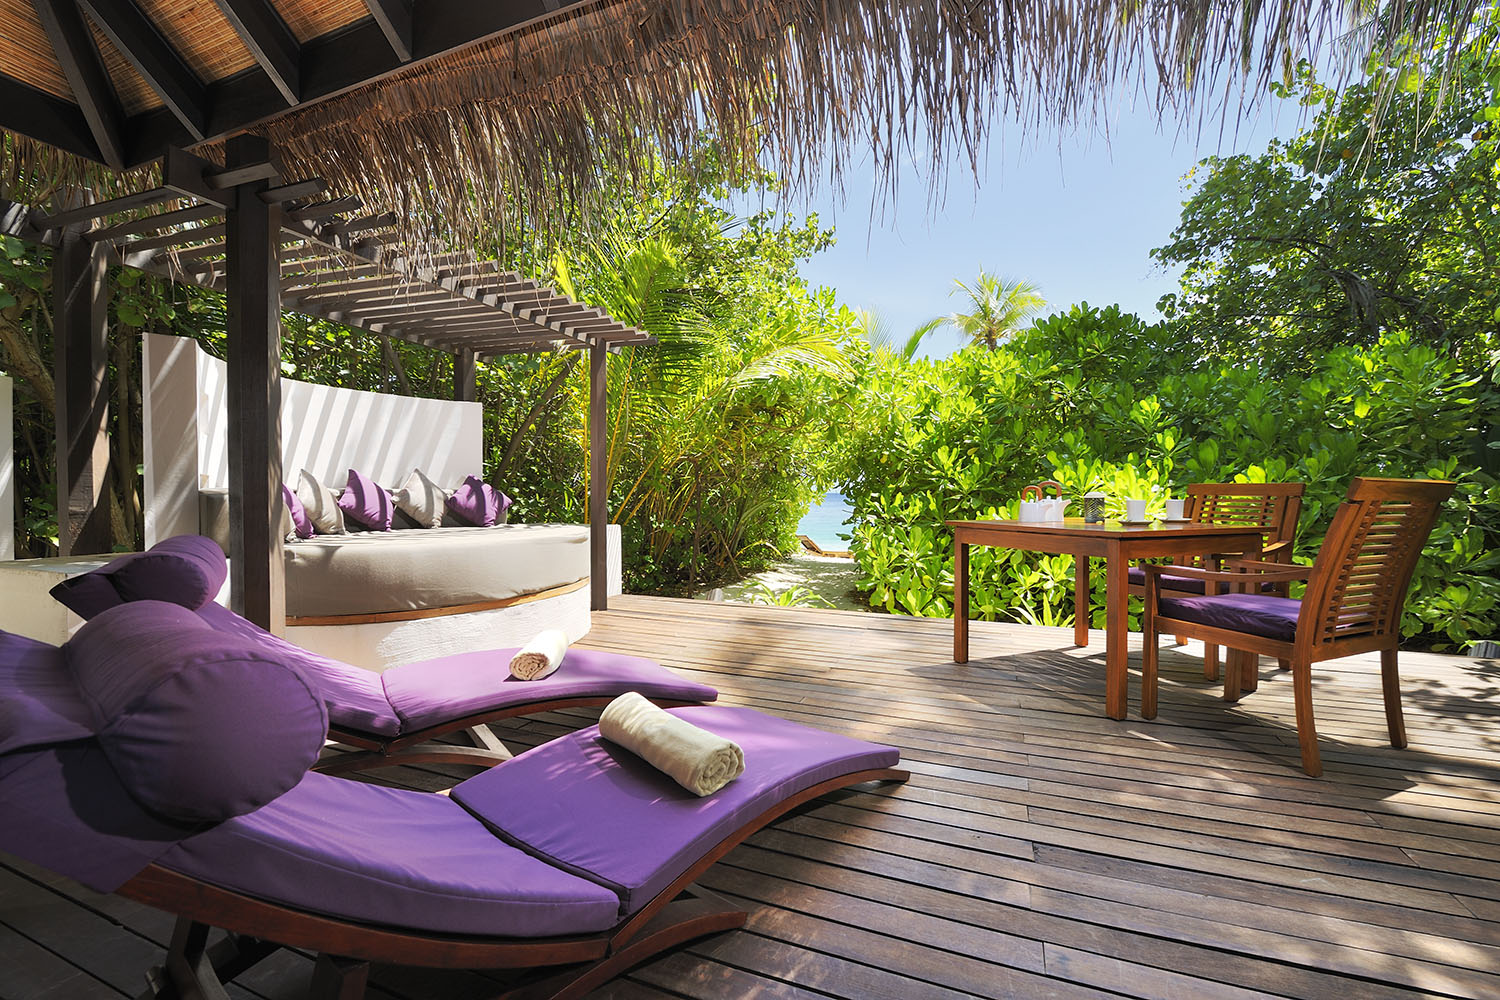 Coco Bodu Hithi Review